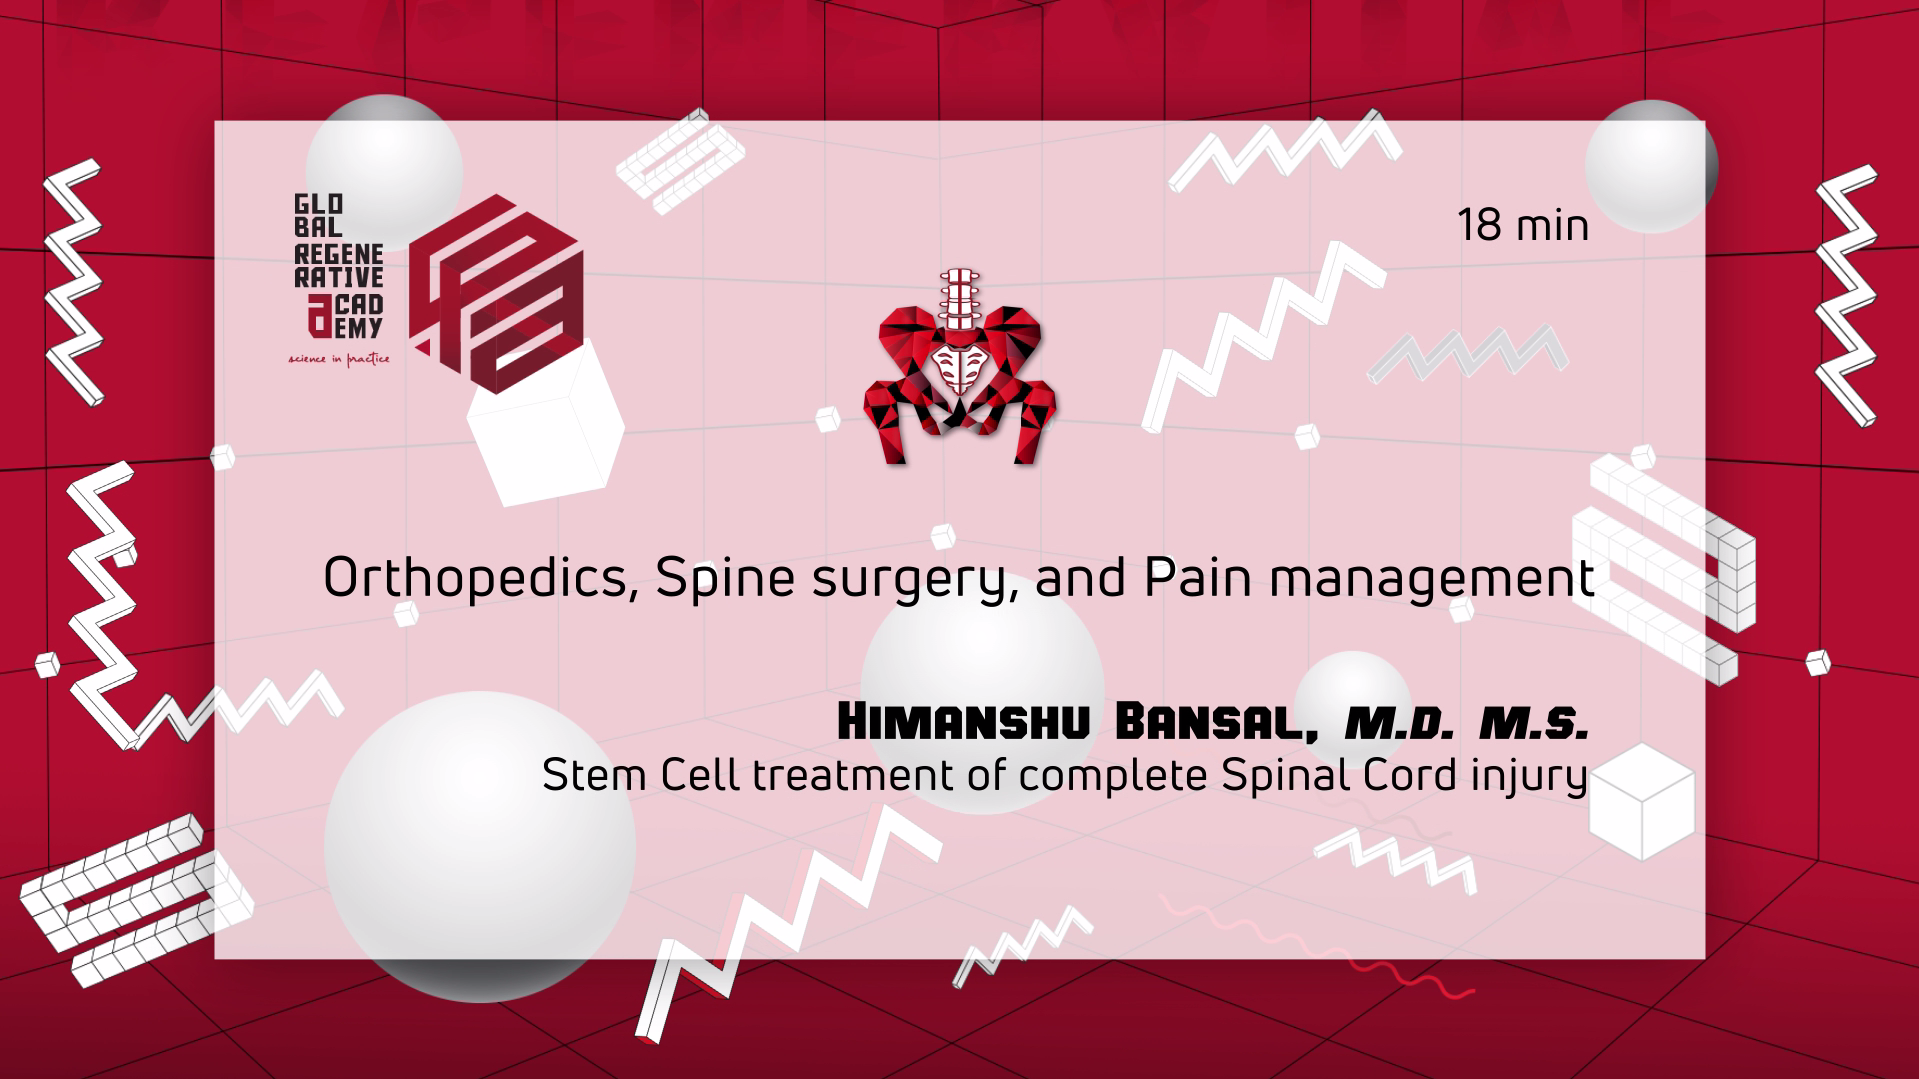 M.D. M.S. Himanshu Bansal – Neurosurgical Perspective – stem cell treatment of complete spinal cord injury